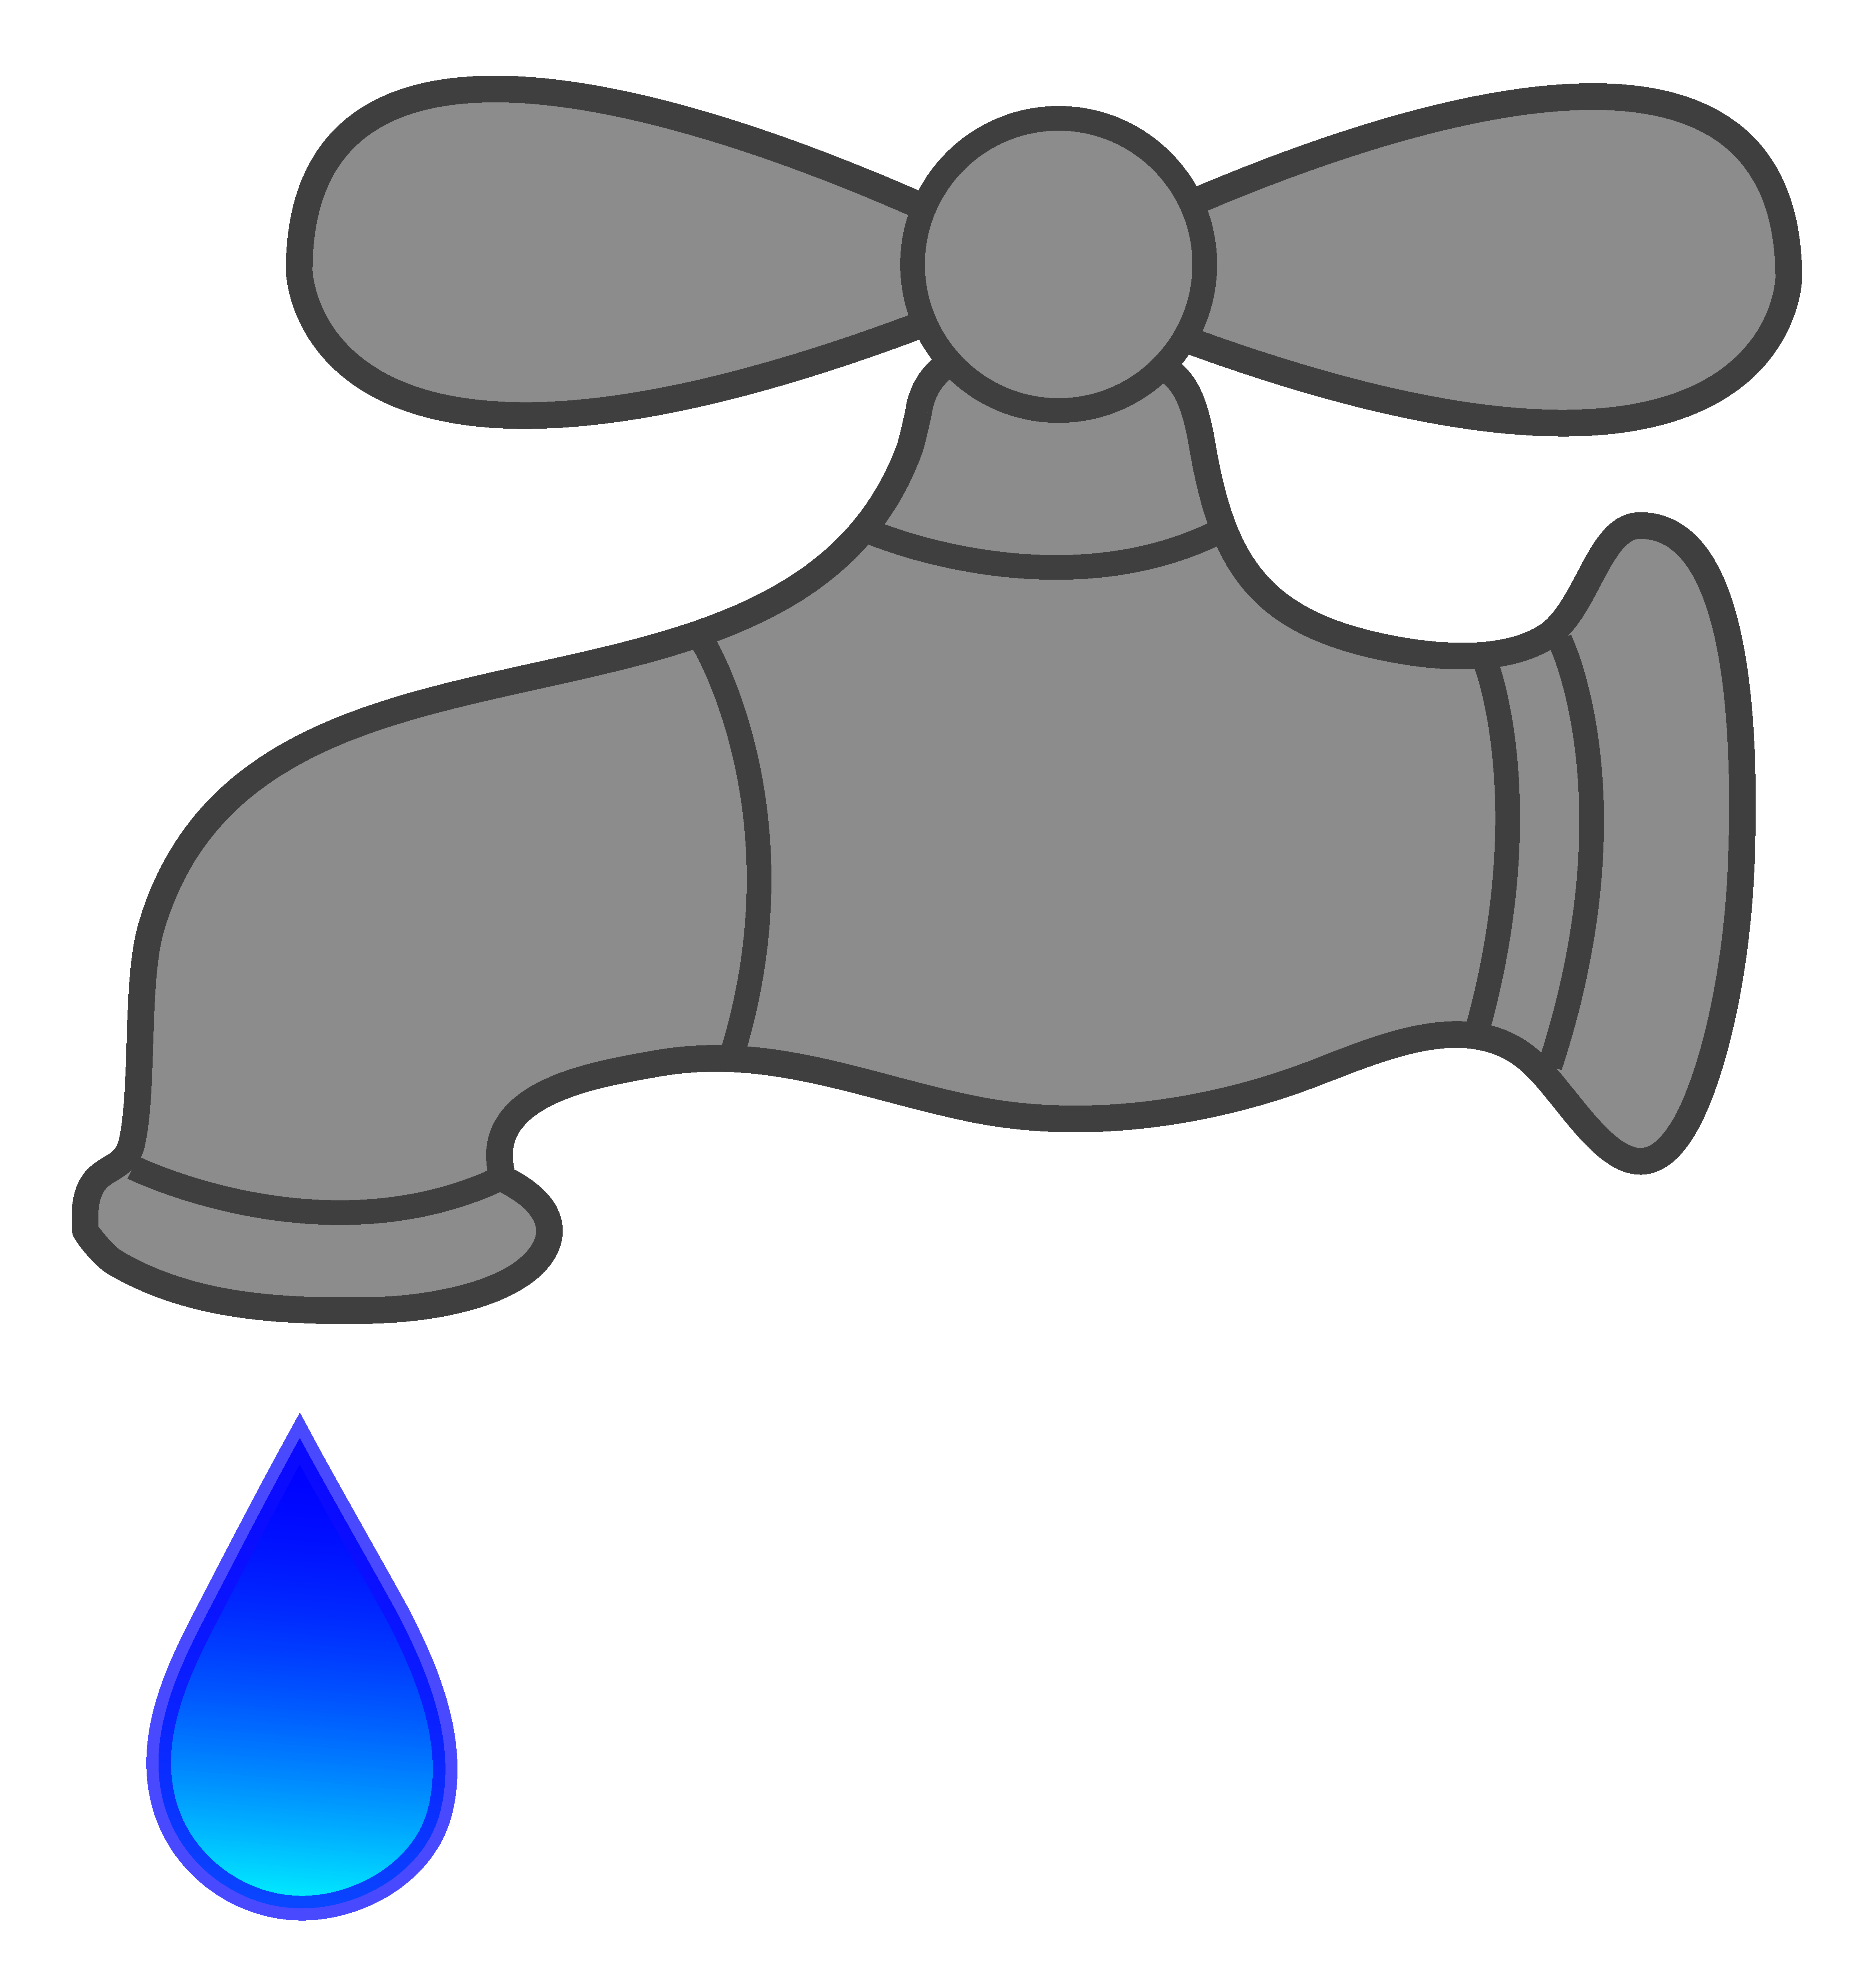 picture royalty free Washing clipart tap. Water faucet desktop backgrounds